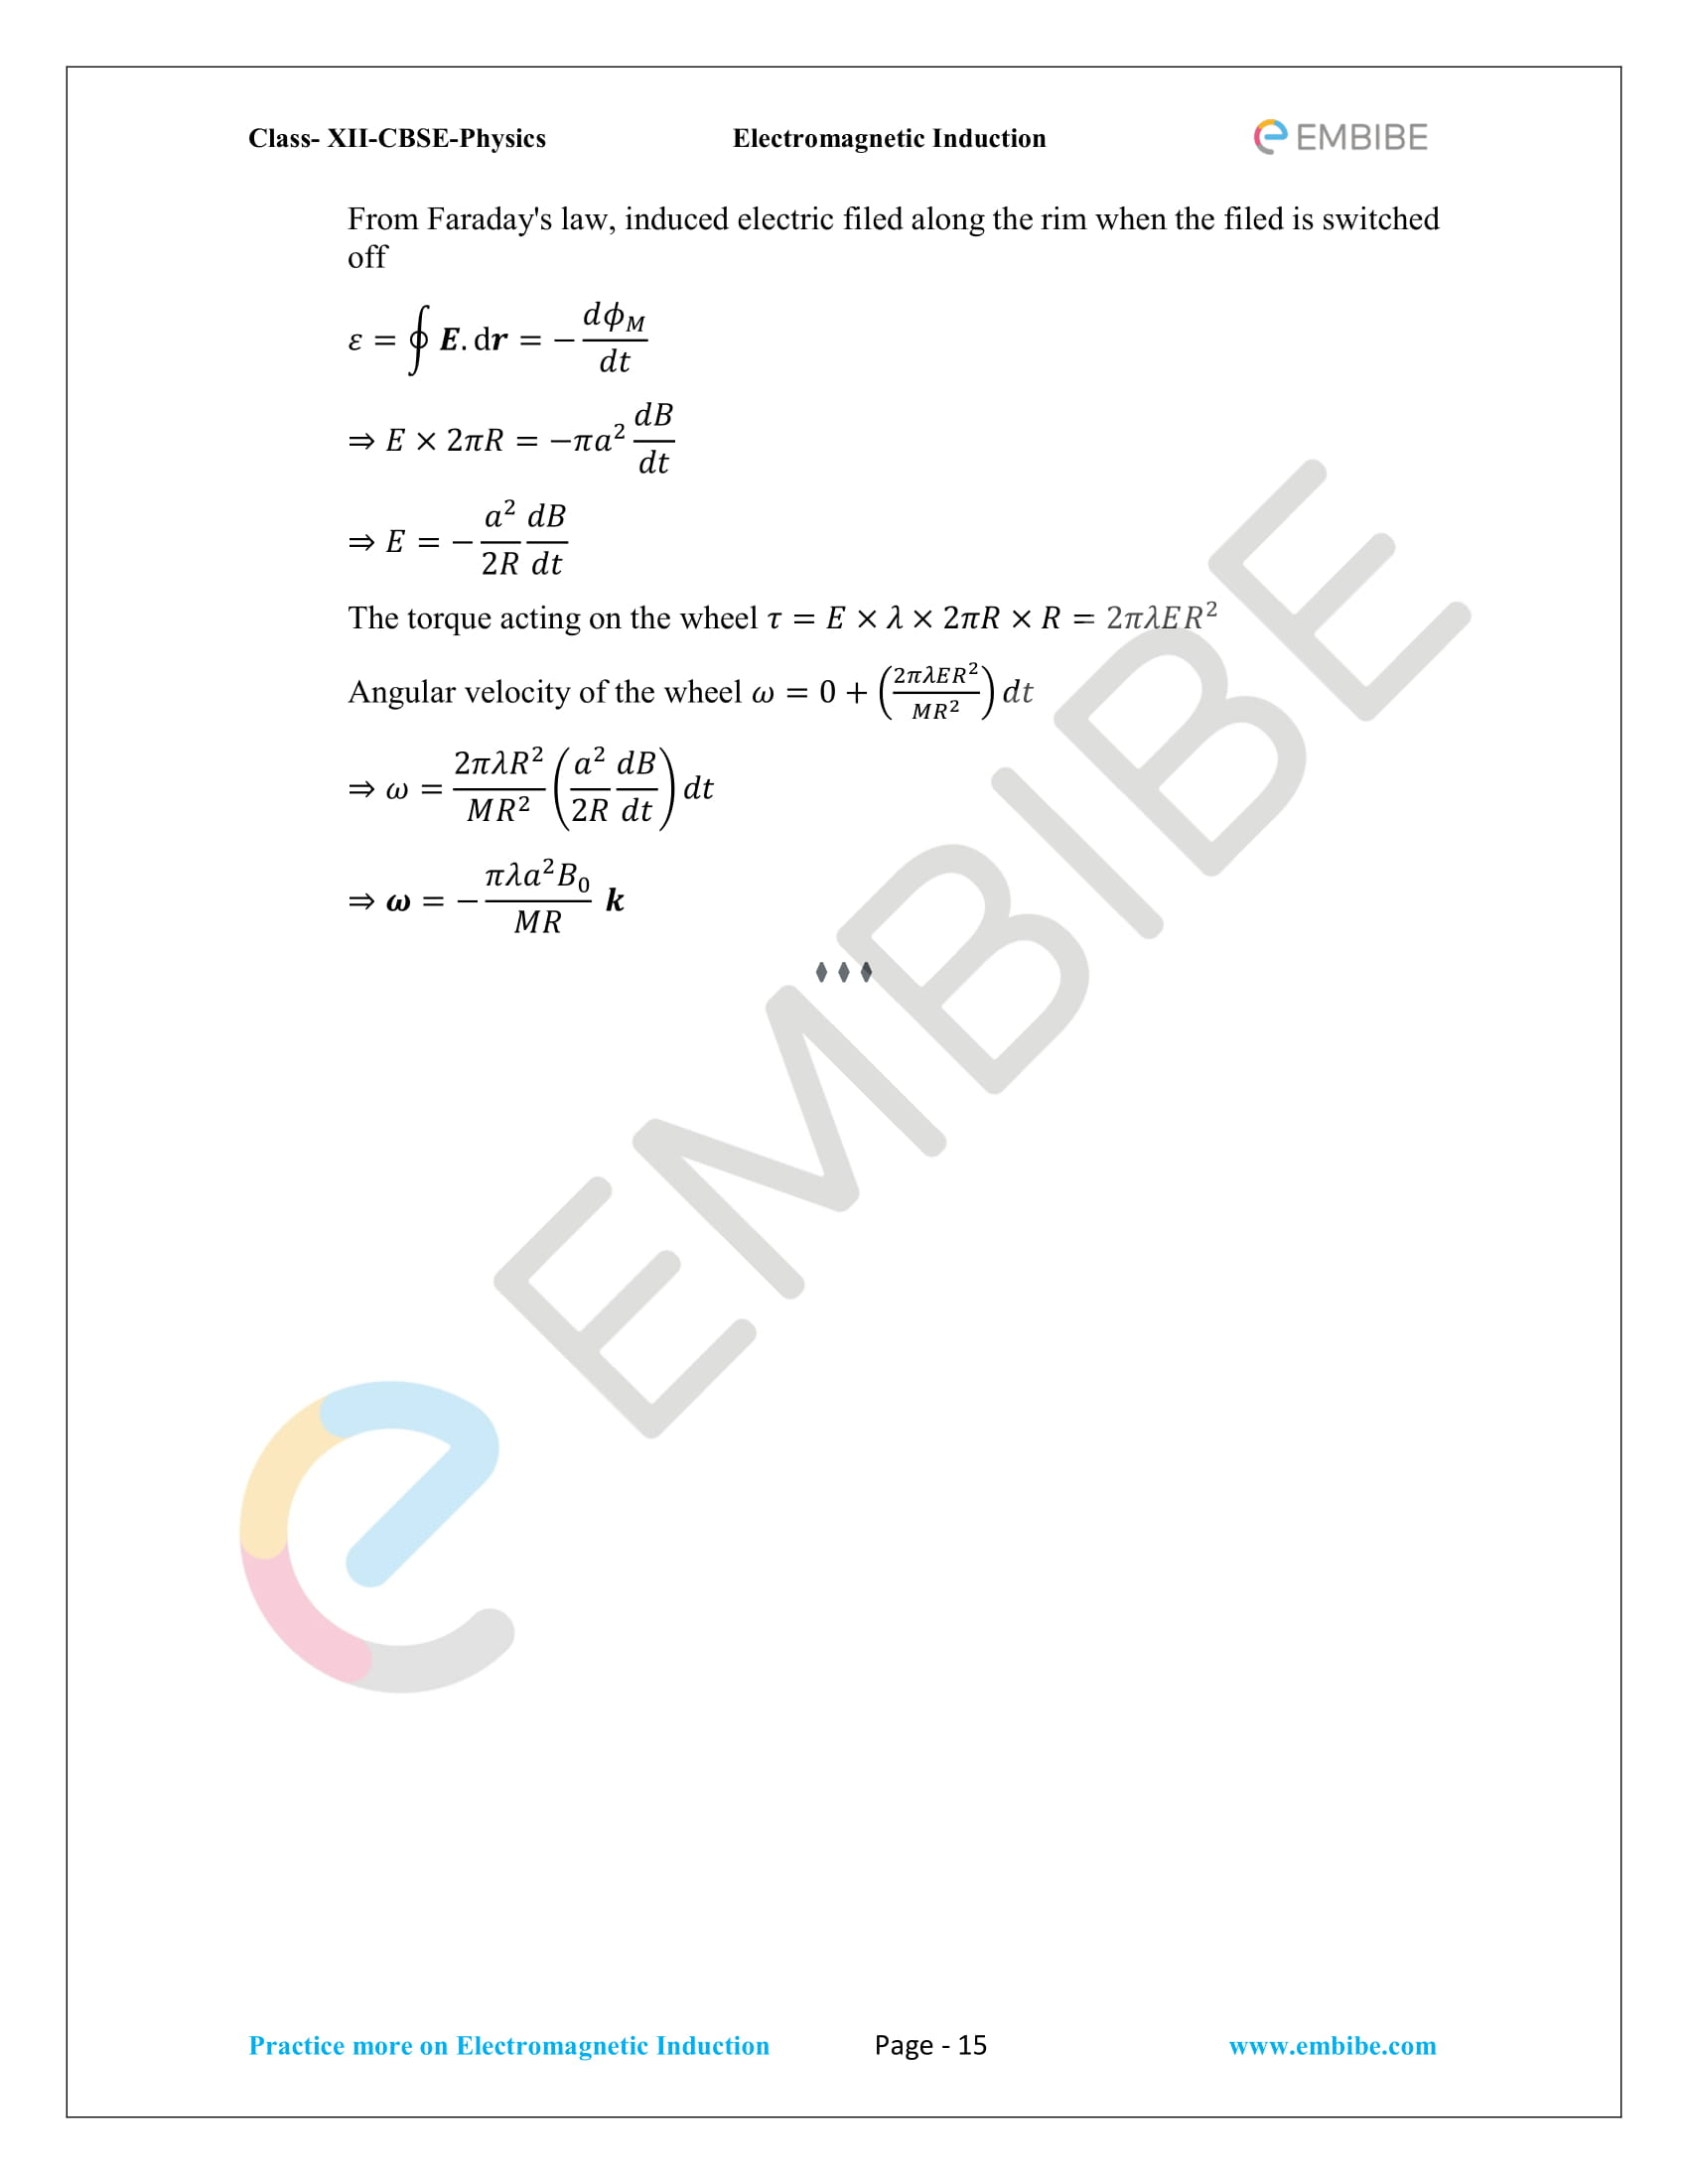 CBSE NCERT Solutions Class 12 Physics Chapter 6 PDF - Electromagnetic Induction - 15